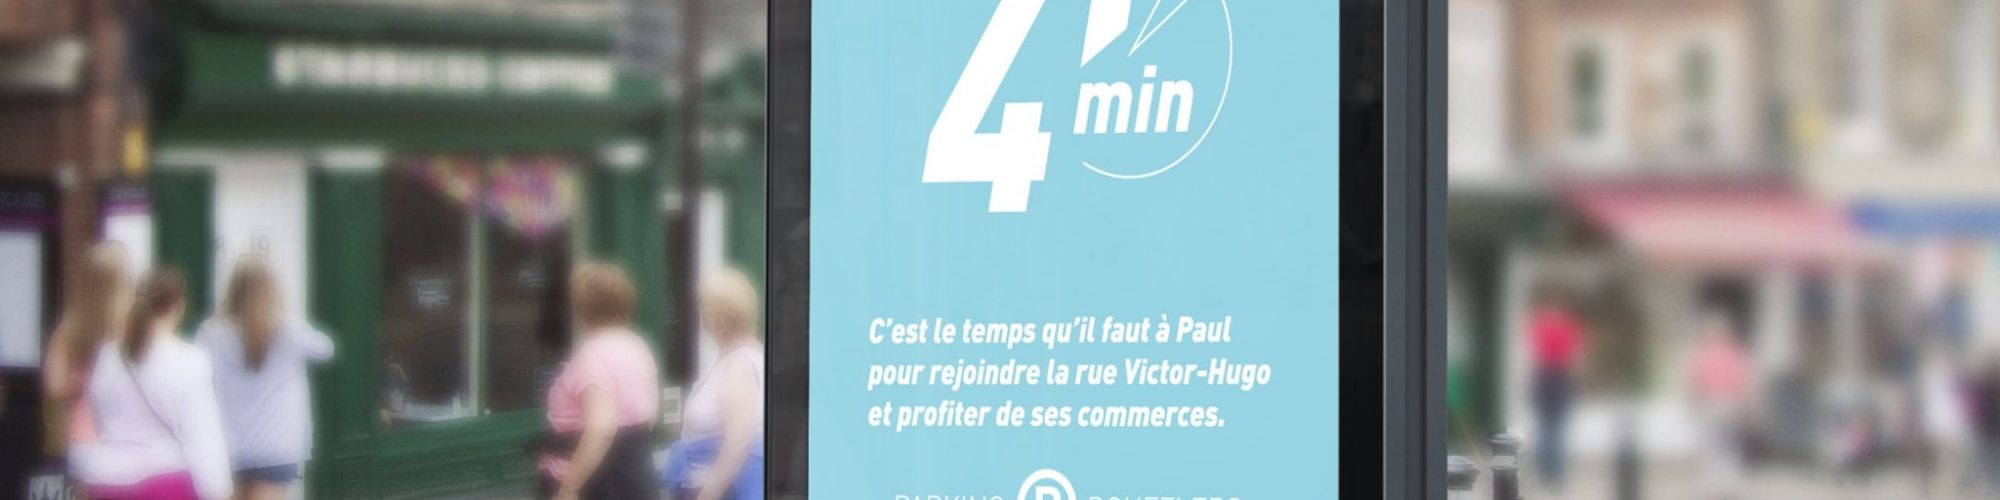 campagne-publicitaire-bayonne-stationnement